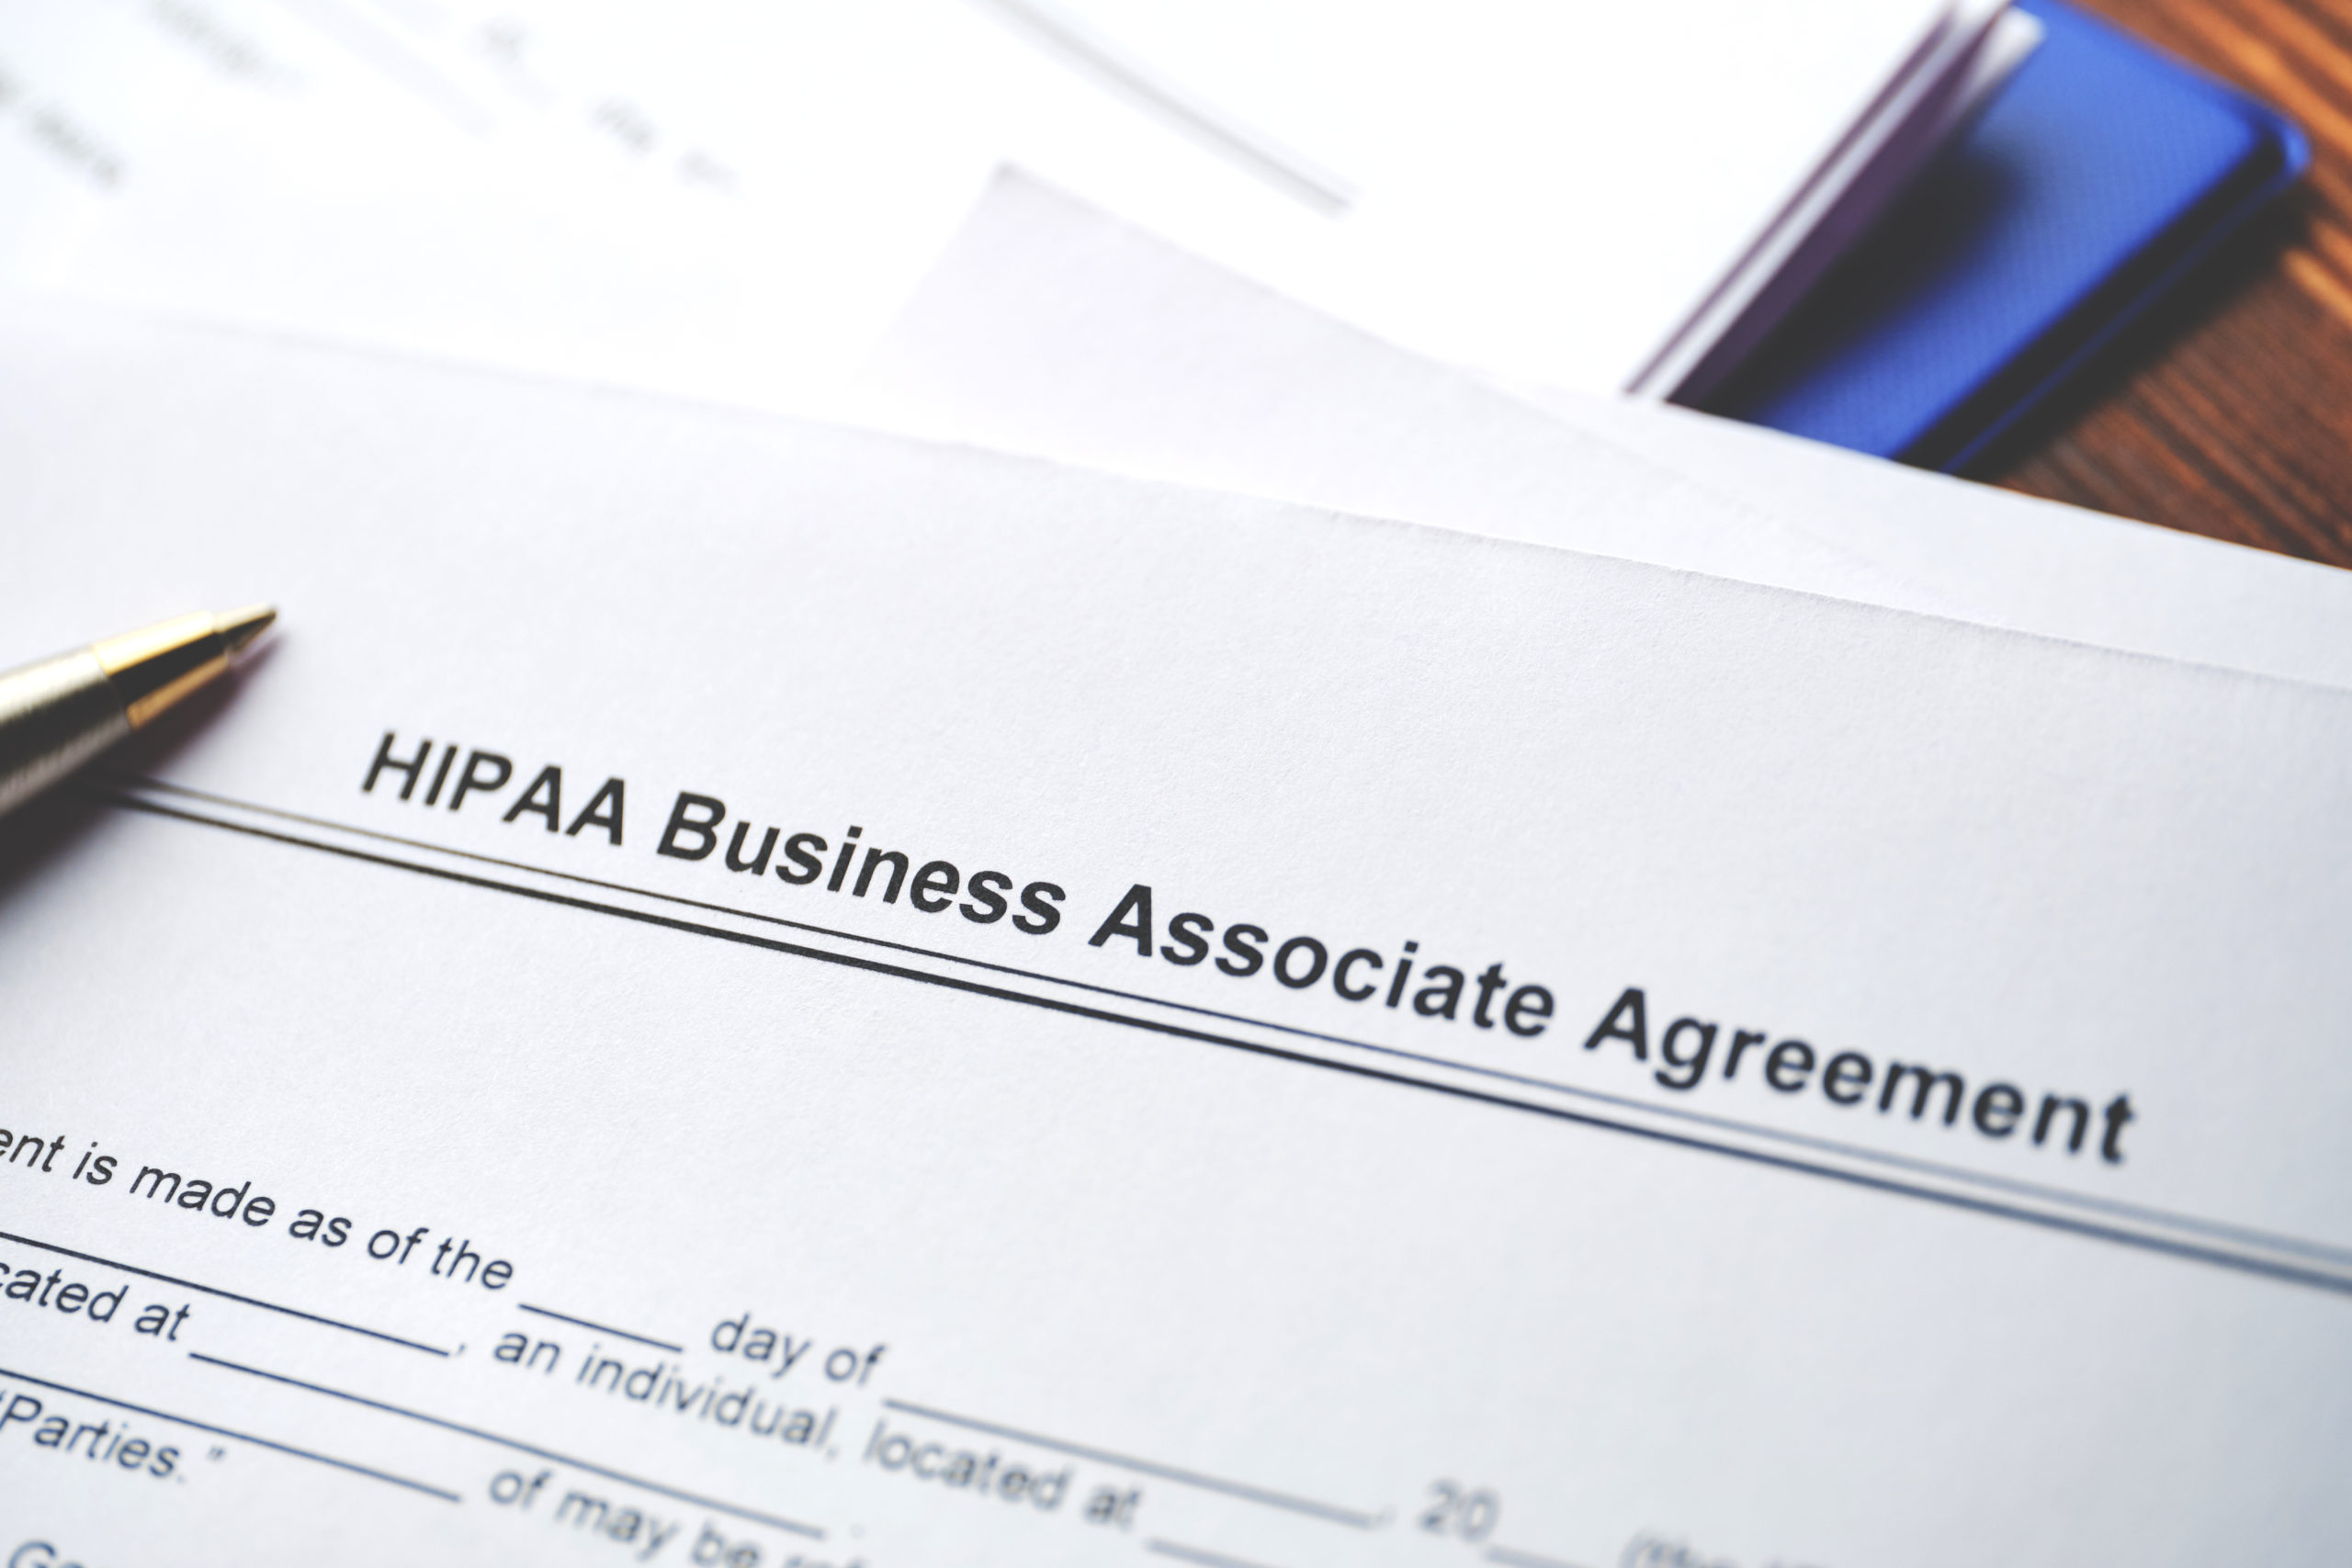 Legal Document Hipaa Business Associate Agreement On Paper Close Up